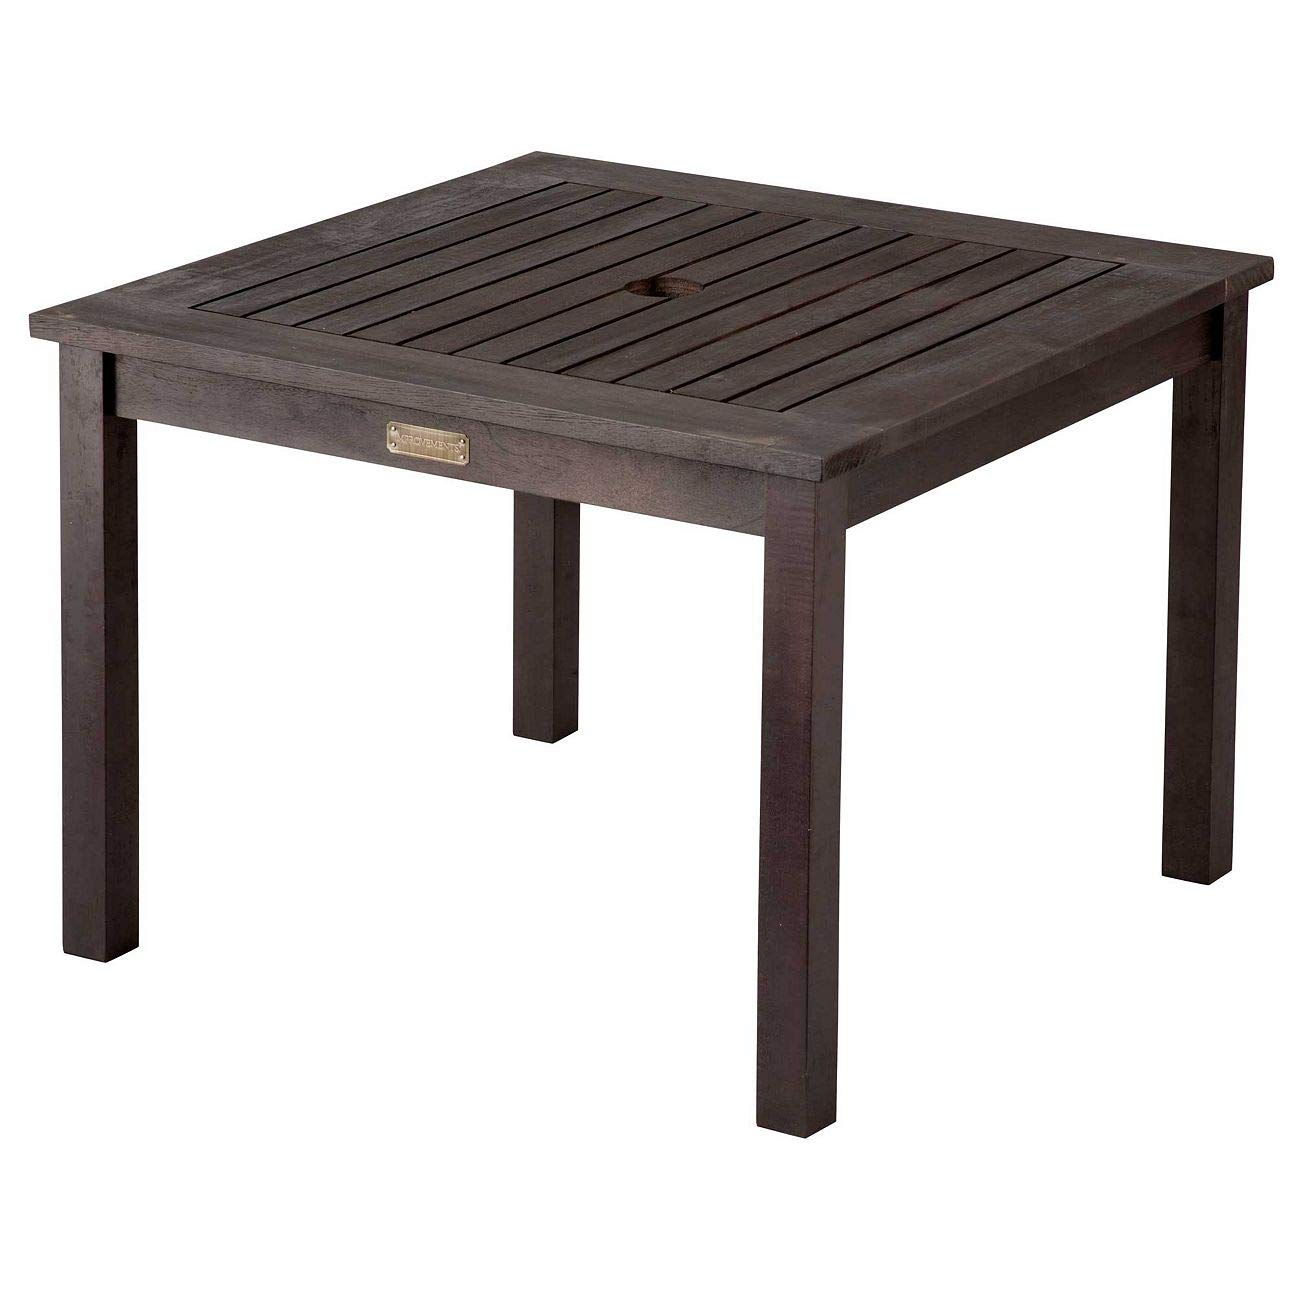 outdoor rustic espresso finish eucalyptus wood umbrella side table end patio pool furniture garden round concrete cream tablecloth simple console metal threshold cover pier